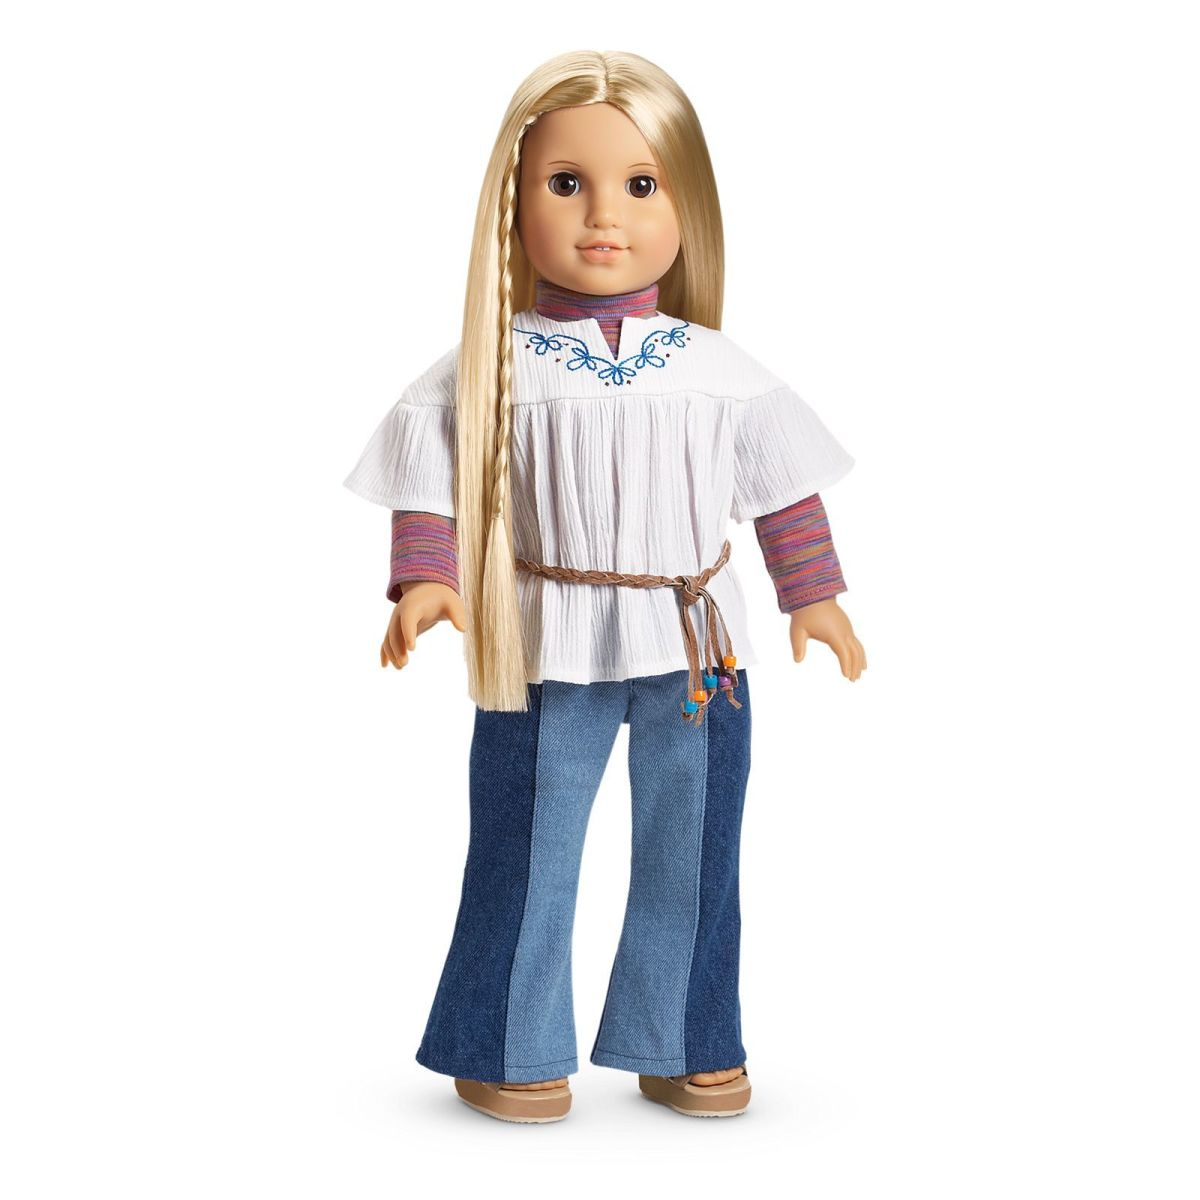 The original version of the Julie doll, dressed in her Classic Meet Outfit